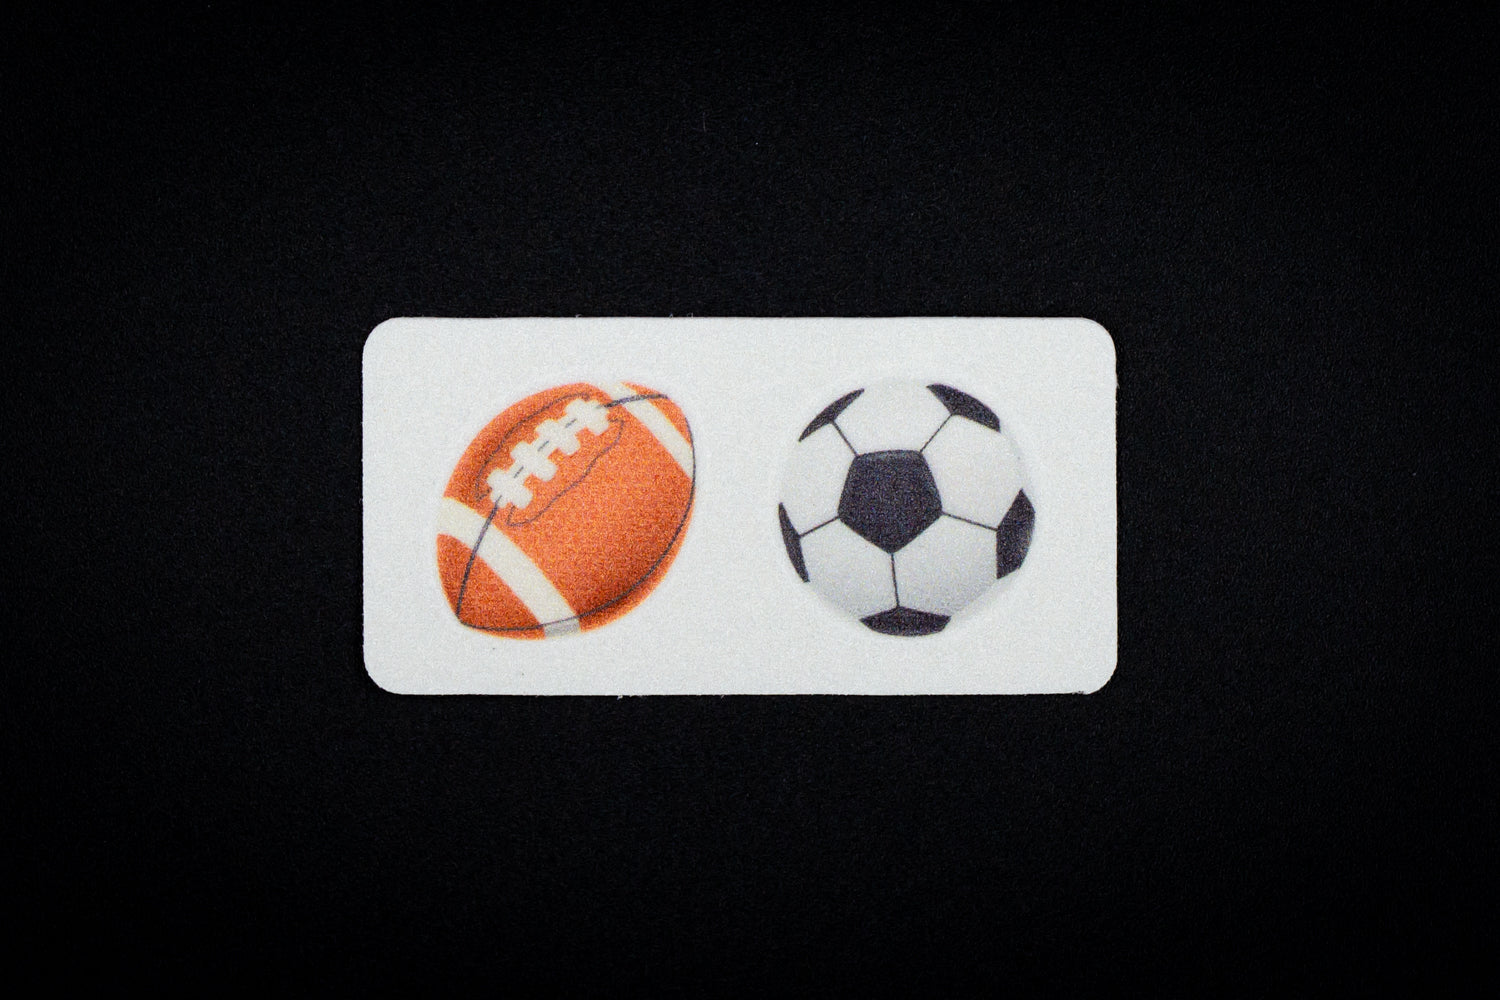 Football / Soccer